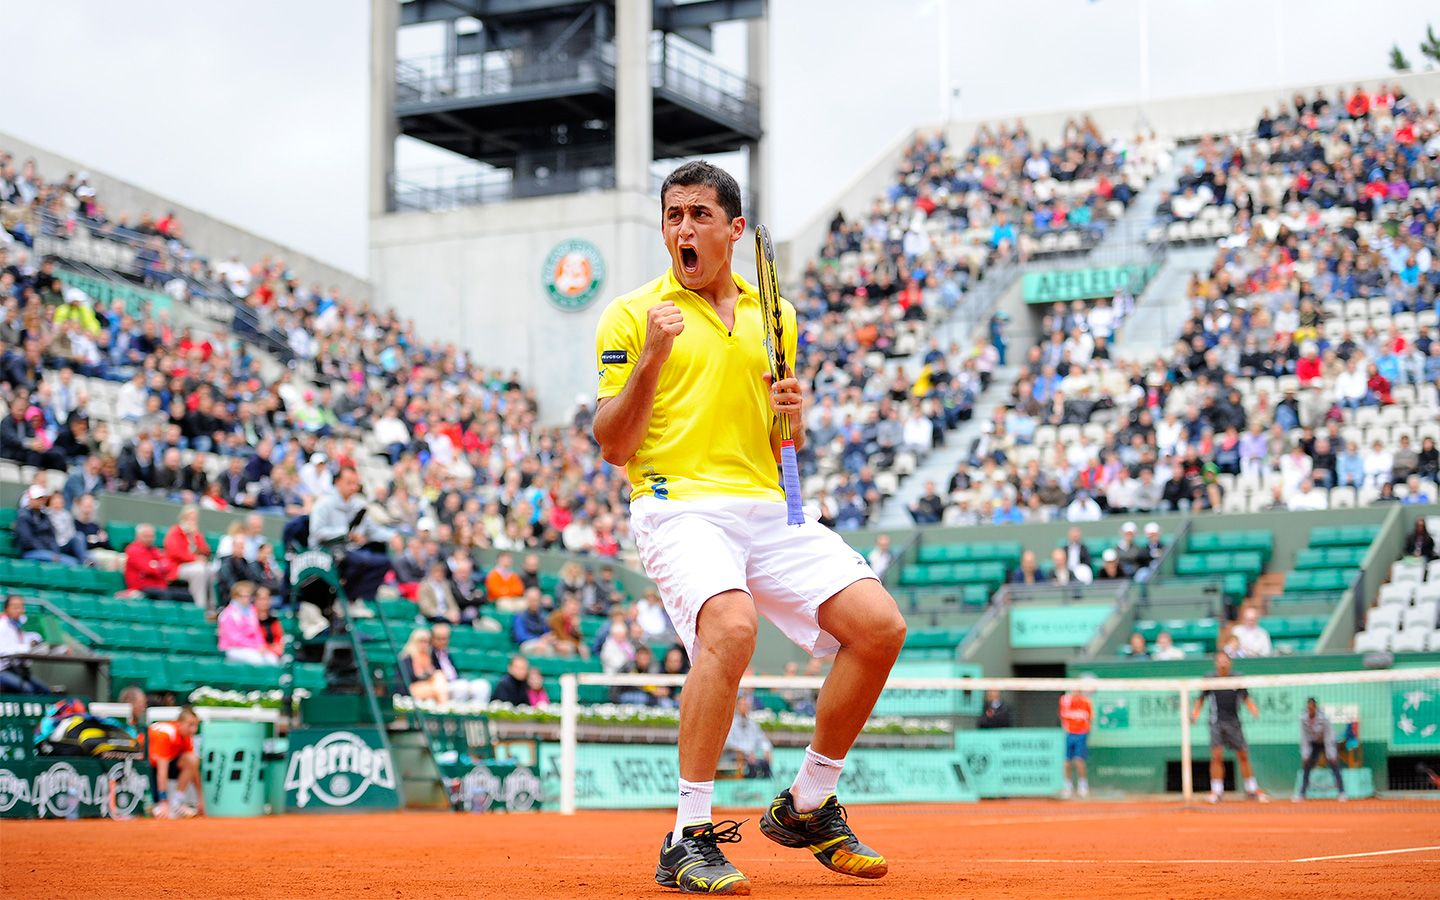 Nicolas Almagro Is Through To The Quarter Finals After A Solid Three Set Victory Over Janko Tipsarevic Roland Garros Tournaments Athlete